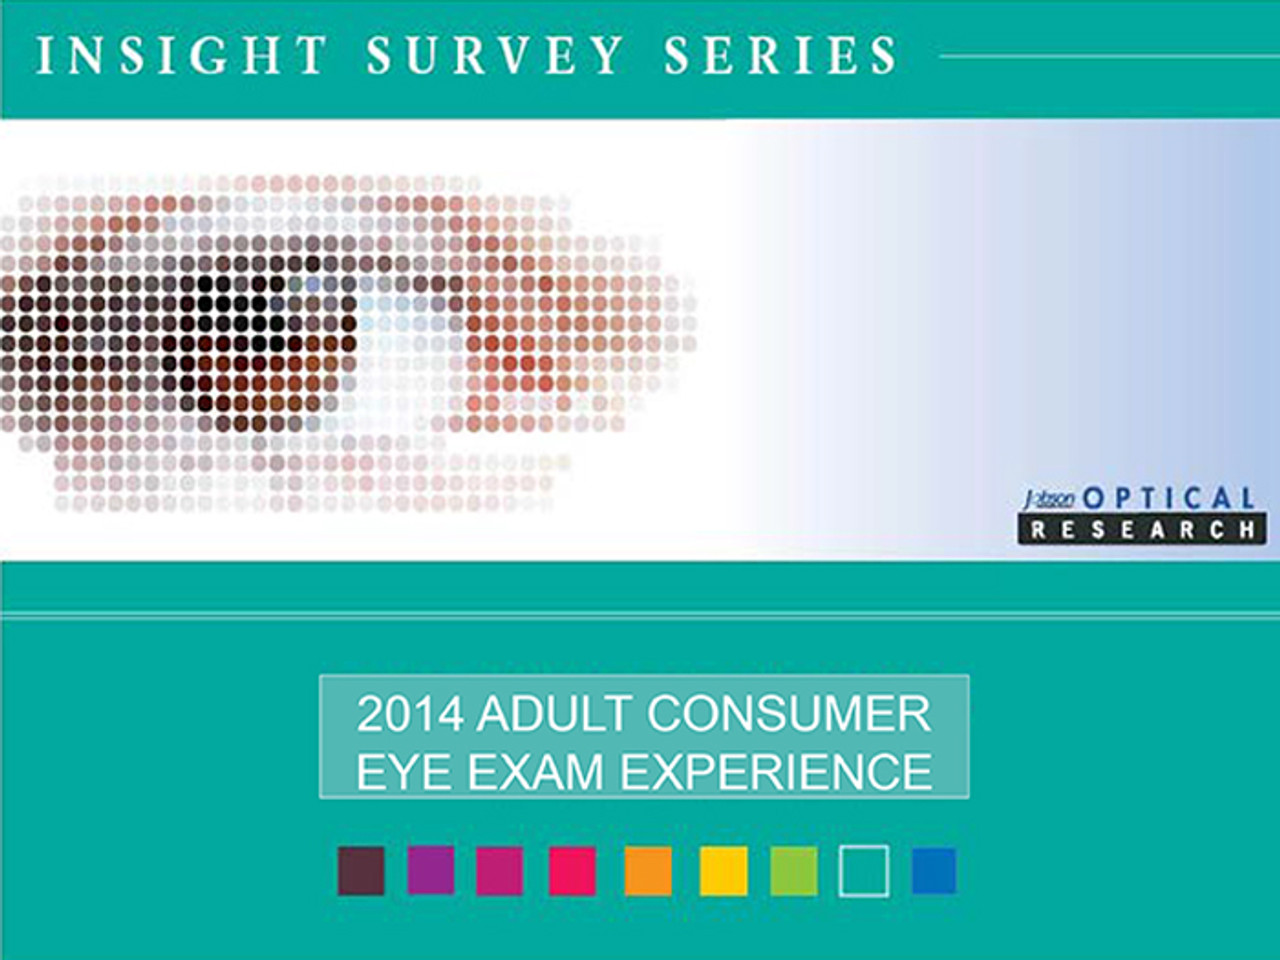 2014 Adult Consumer Eye Exam Experience Insight Survey